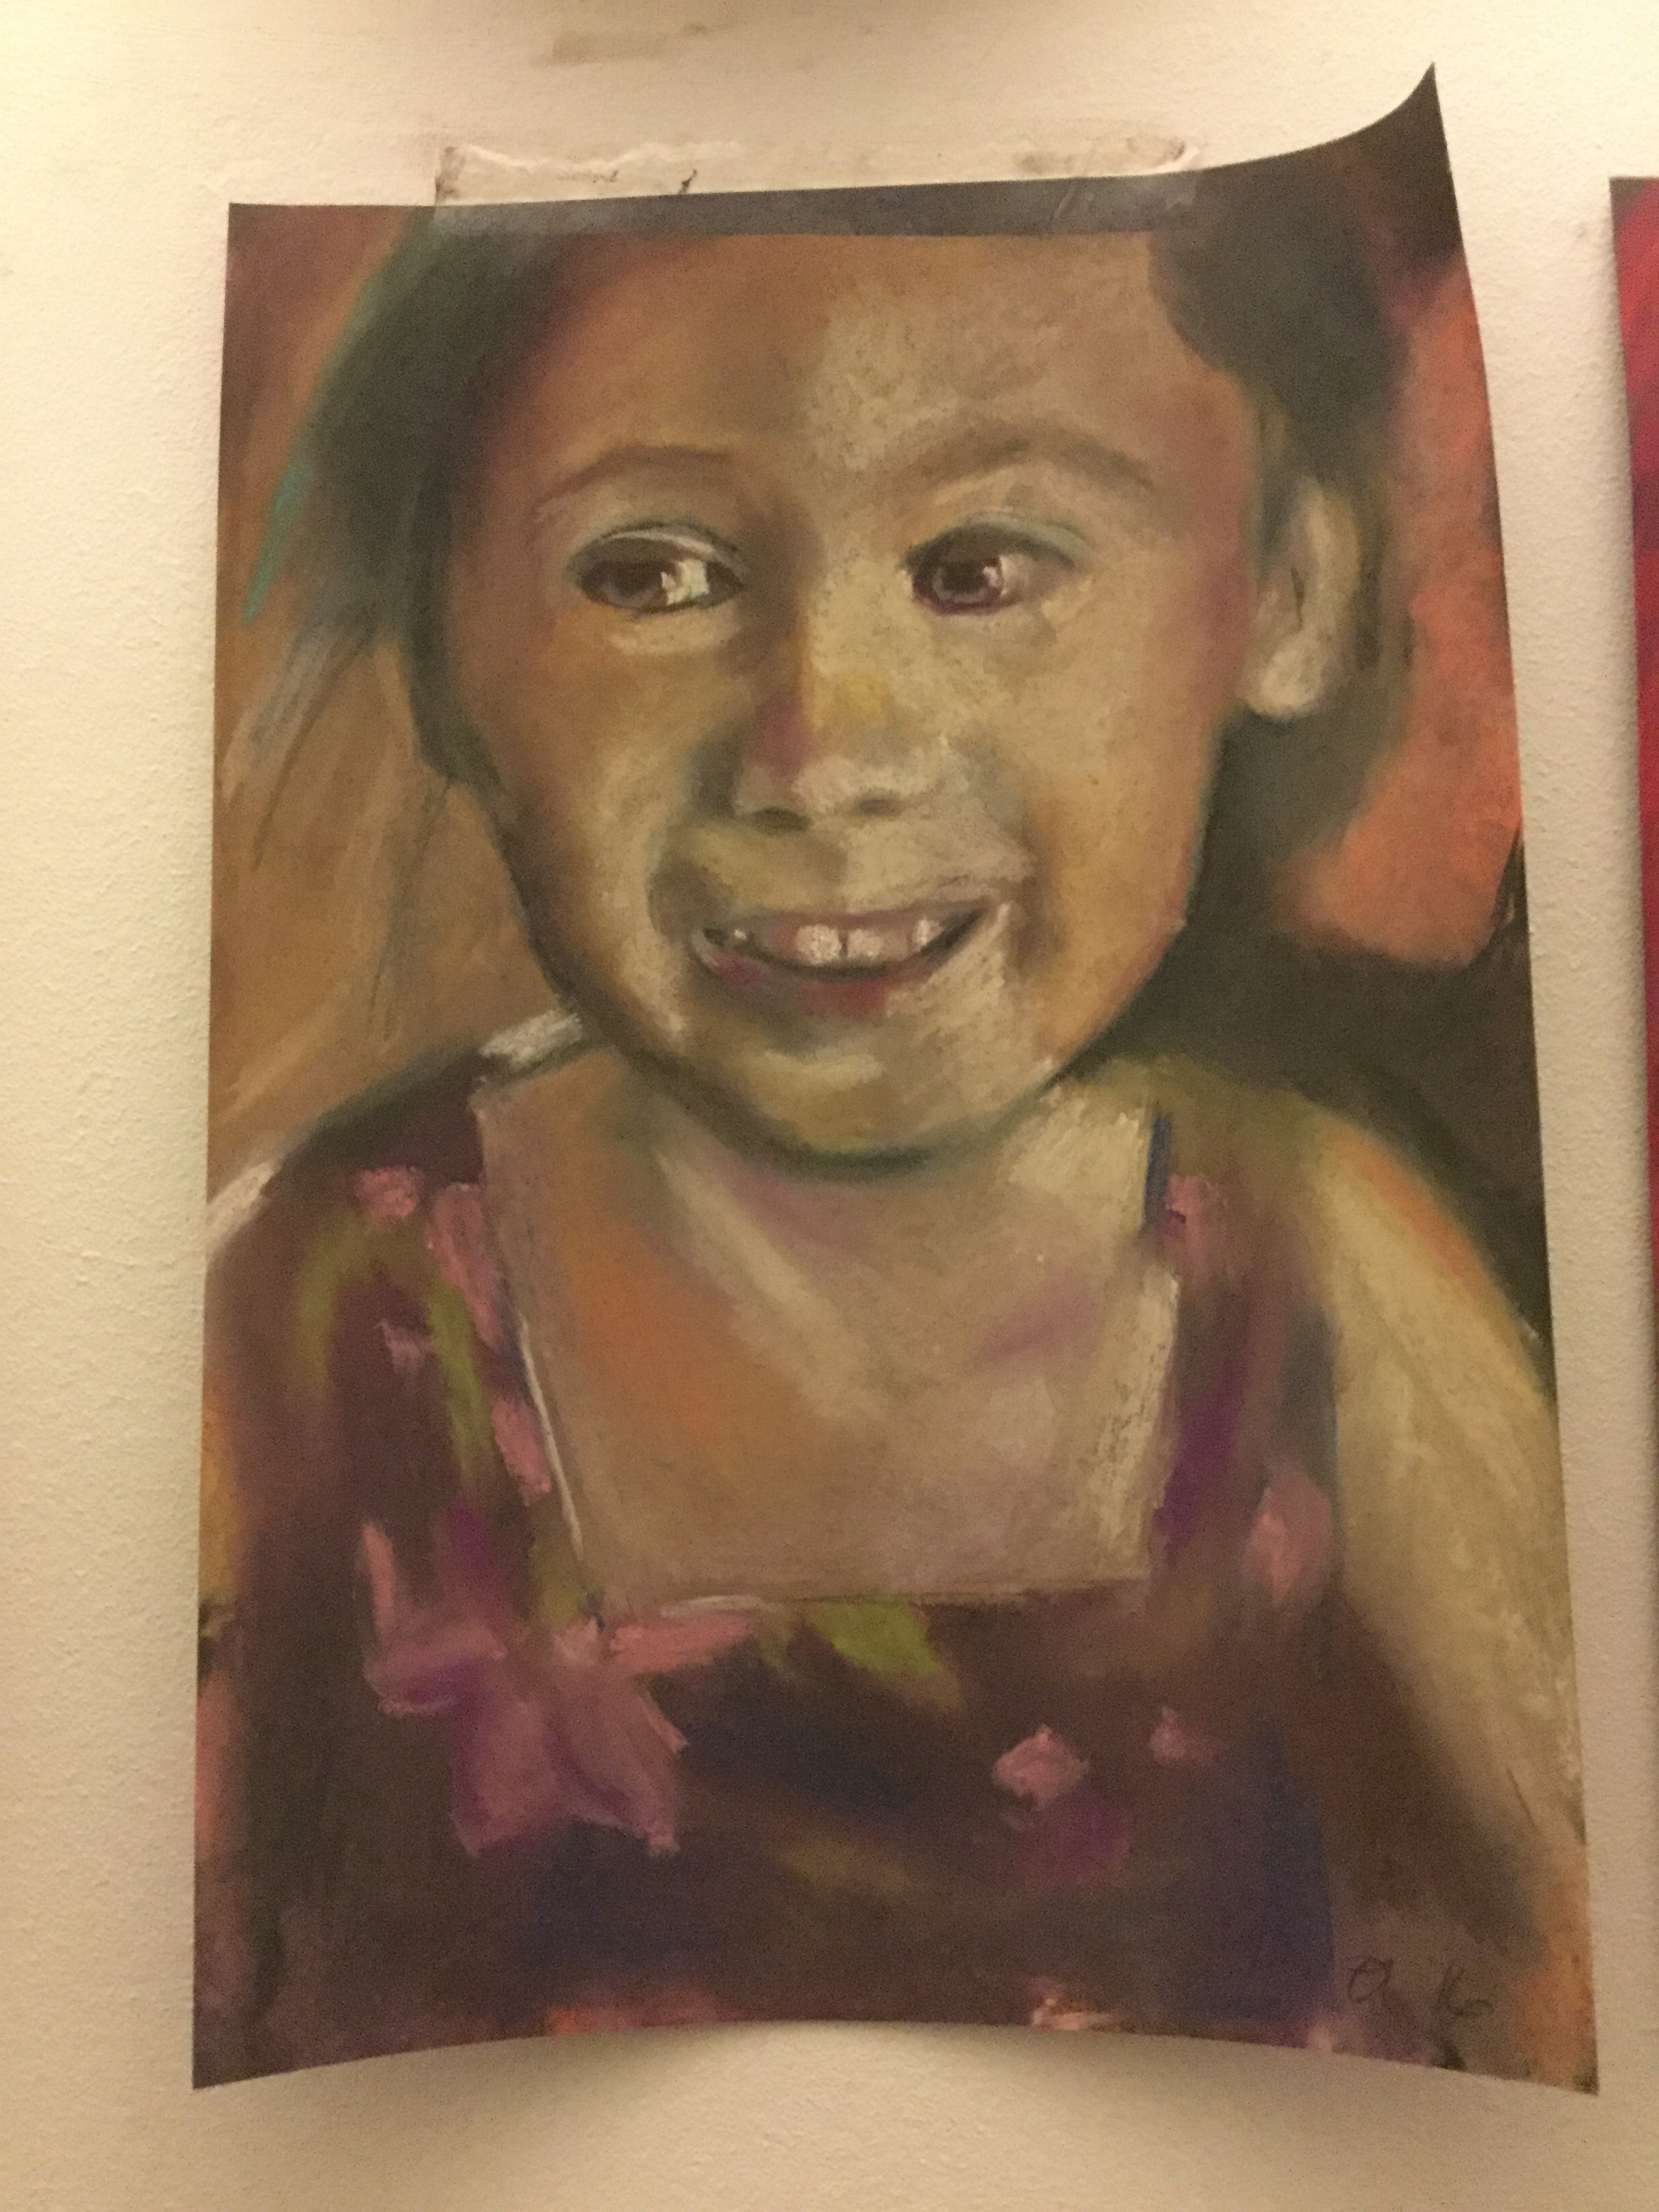 Portrait number three is of a lovely little girl named Peyton whose mum sent me her pictures. She has such a sweet little face. I am so unused to working in pastels - I think it will take a few portraits before I relax into them. Kathy, Peyton's mum did not see the broadcast live but she did manage to see it on playback, as did Peyton.   Her mum has since told me that it is interesting that her portrait is number three, as Peyton was born early at 33 weeks weighing just 3 pounds on the 3rd of the month. She was in the hospital for 3 weeks and was released on December 30th. So lots of number three's in her life. Her grandad reckoned that 3 was a holy number and that Peyton would be fine. She was and she is.   And now she is number three - funny how things happen.   It is so great that people are starting to send me lots of images via Twitter to @OonaghLatchfordArt hashtag #30days30portraits  It is really exciting for me to log on and see all the lovely messages from all of you and I love how quite unexpectedly lots of you are sending me lovely little story's relating to the photos.